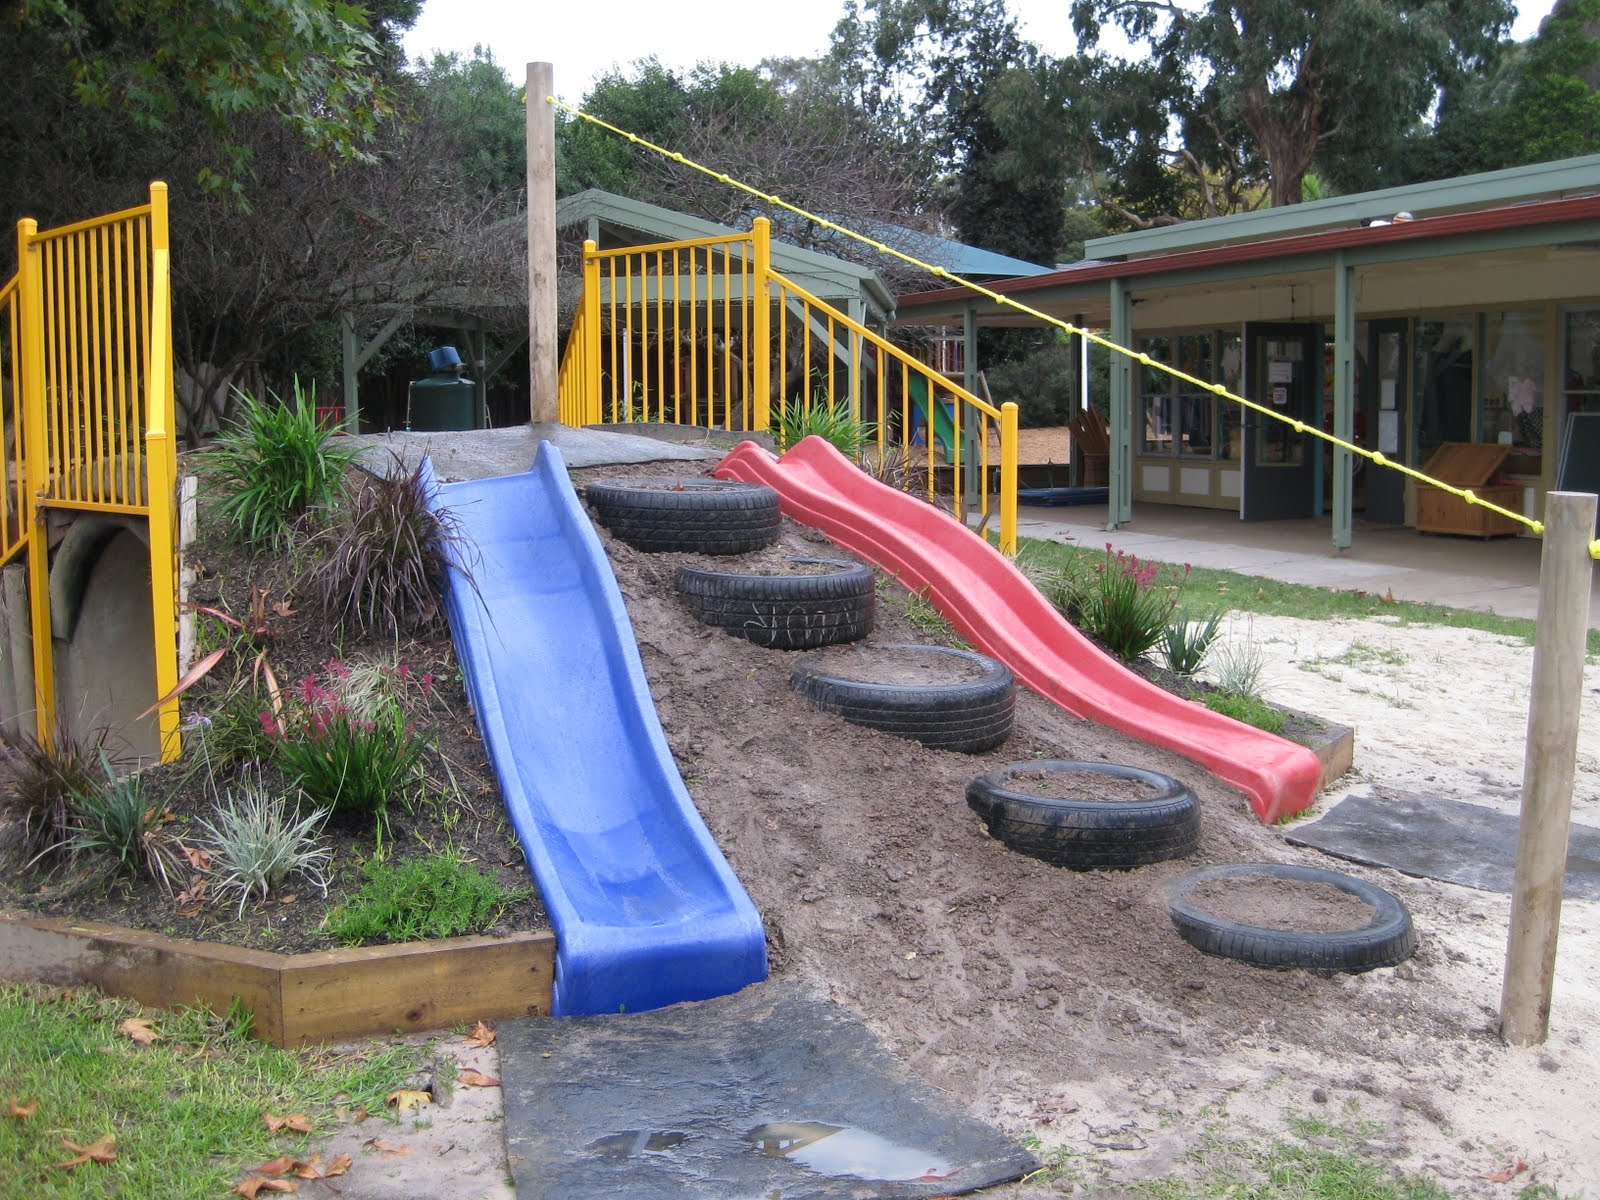 Build a beautiful playground in the garden with old car